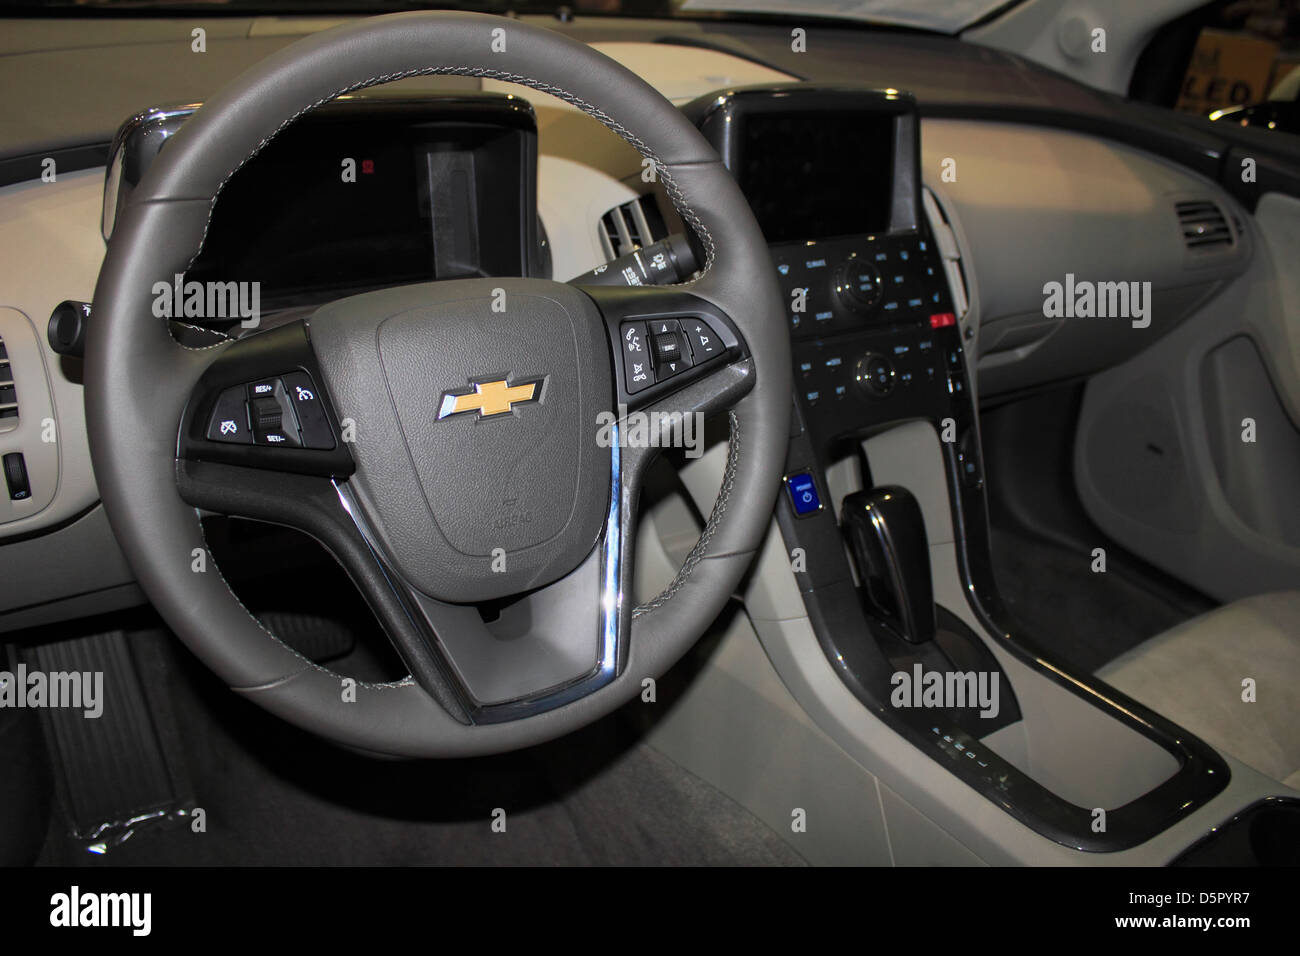 The Interior Dash Steering Wheel In A GMC Chevy Chevrolet Volt Electric  Hybrid Automobile Car